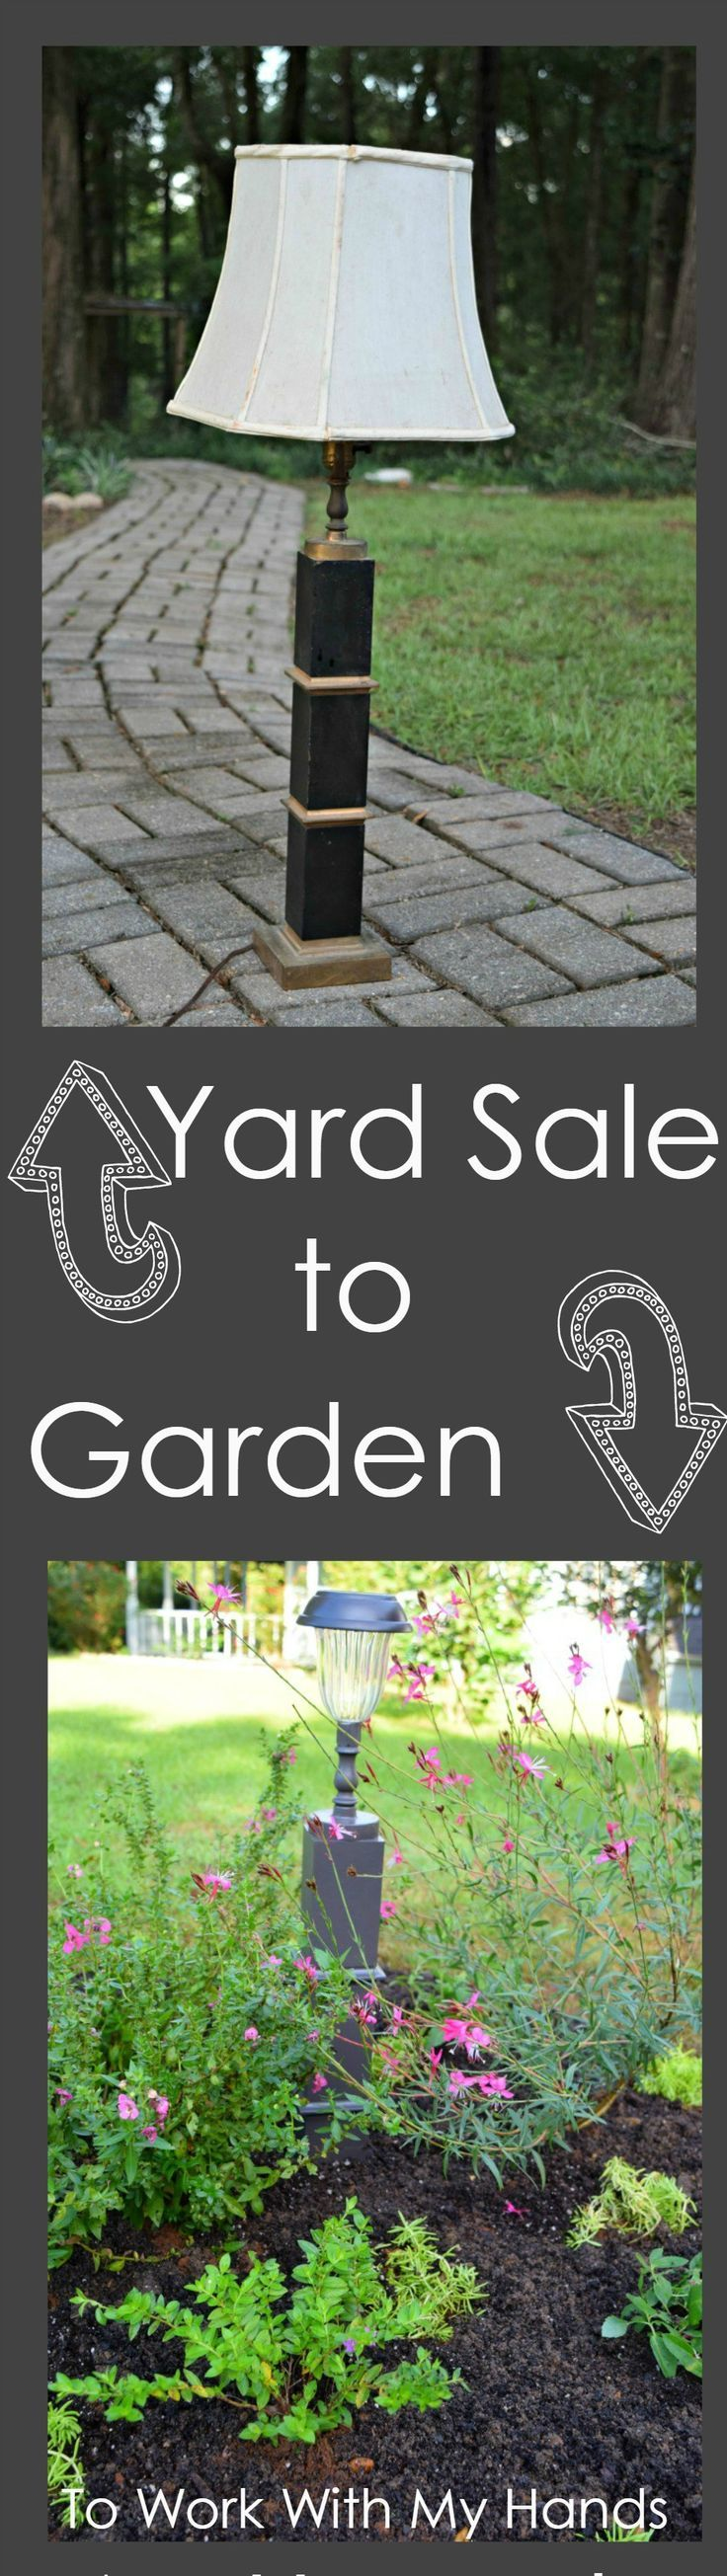 1019 best Gardening and Outdoor Projects images on Pinterest ...